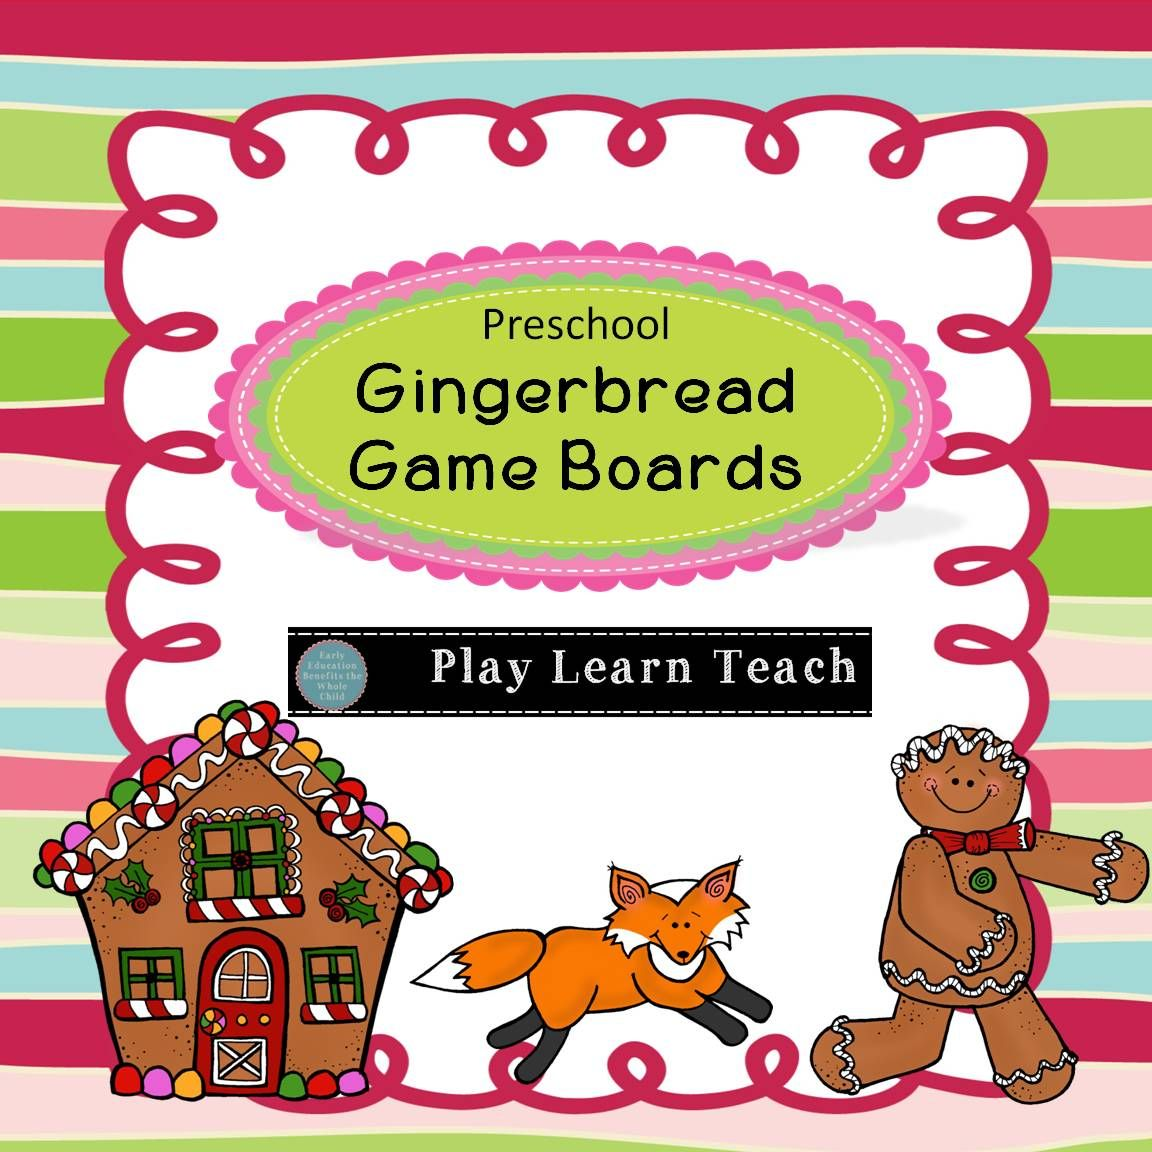 Preschool Gingerbread Game Boards Counting 1 6 And Spatial Relationships Gingerbread Activities Gingerbread Games Creative Teaching [ 1152 x 1152 Pixel ]